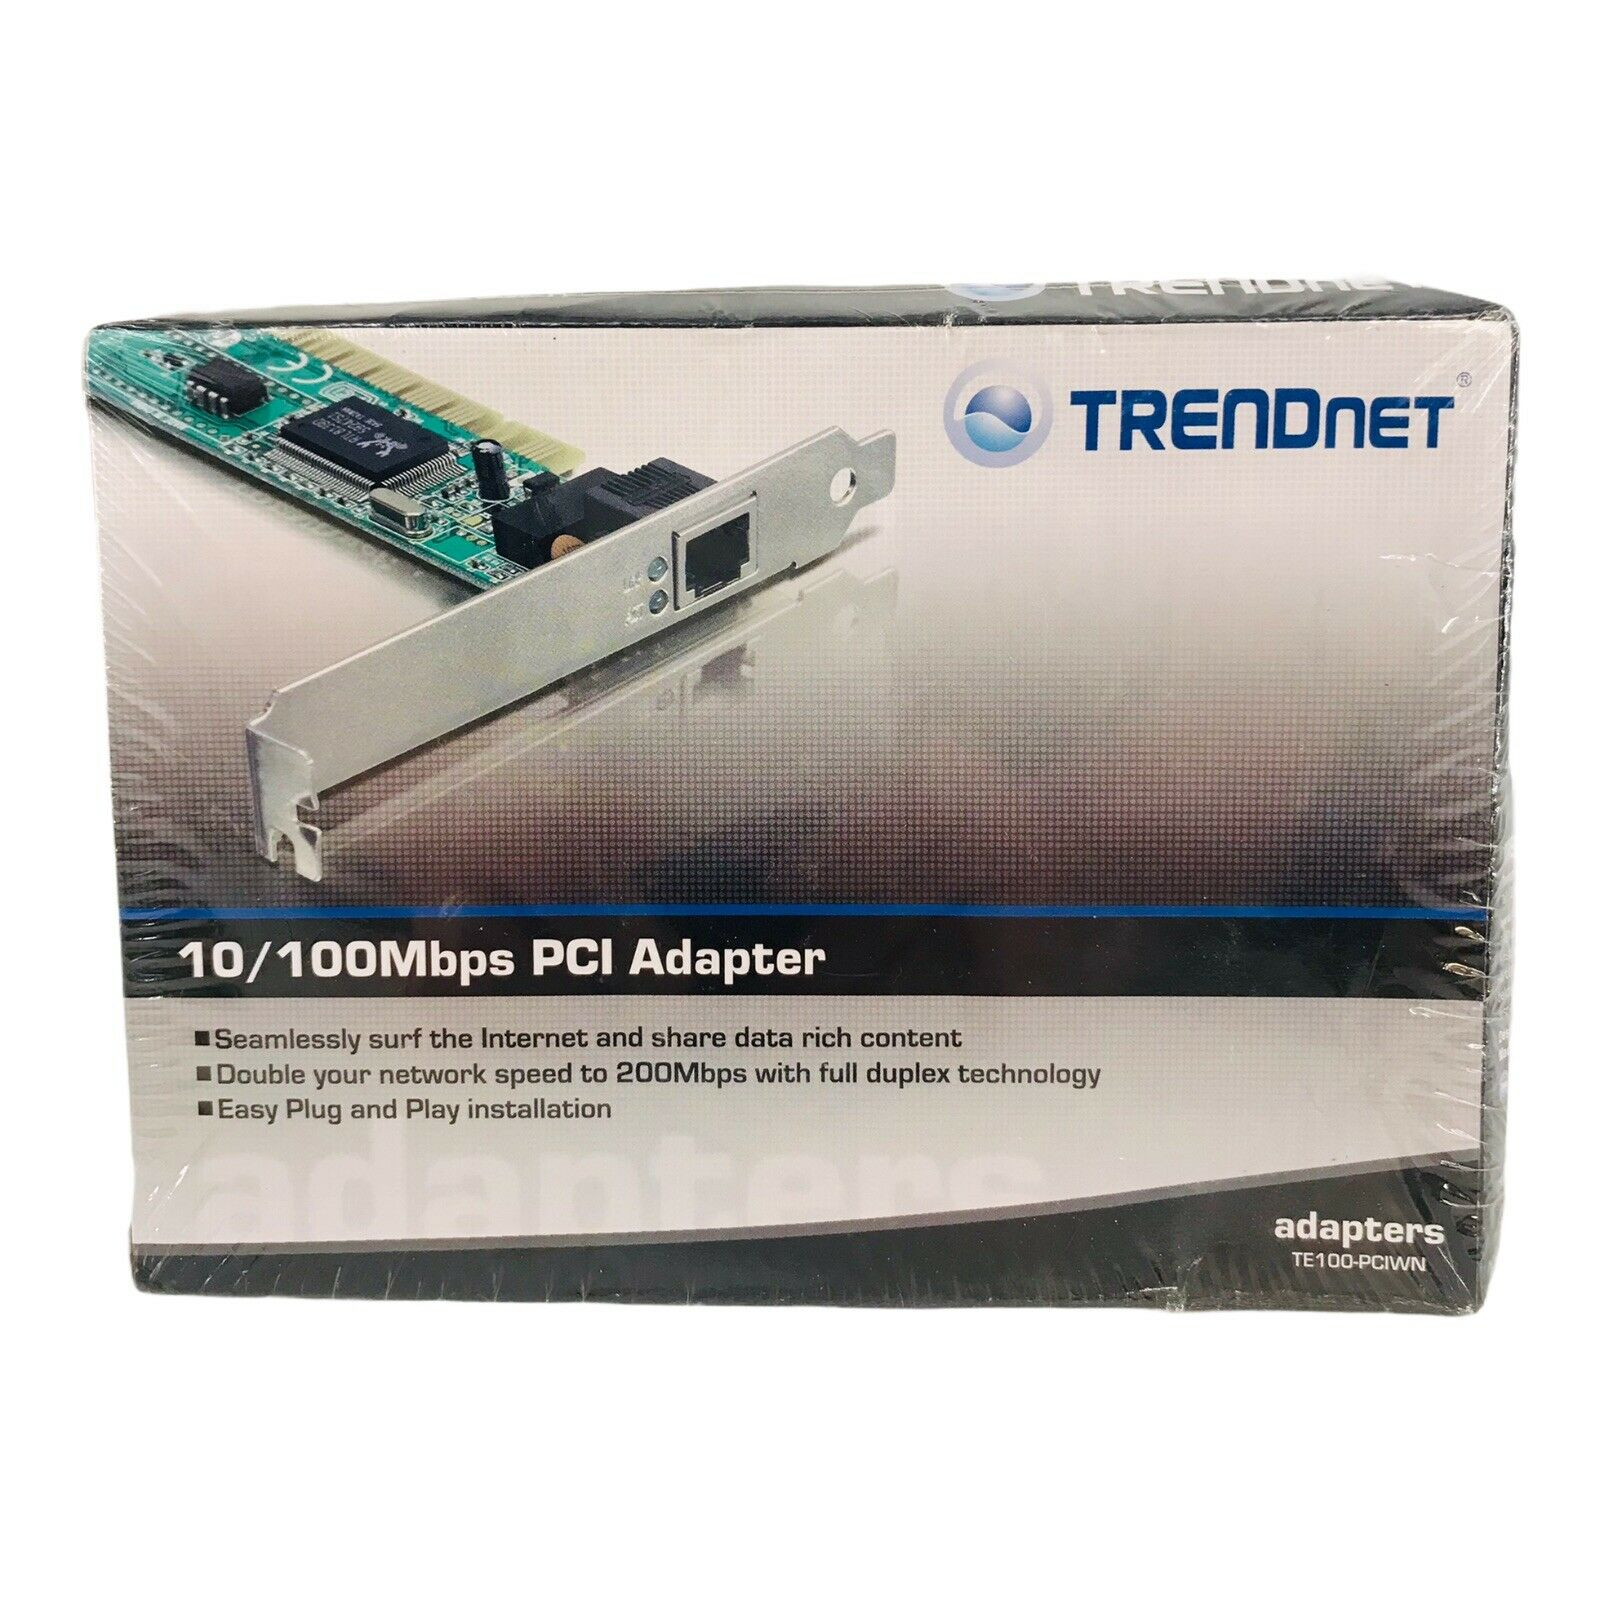 TE100-PCIWN TRENDNET 10/100MBPS Ethernet PCI Card Adapter BRAND NEW SEALED BOX